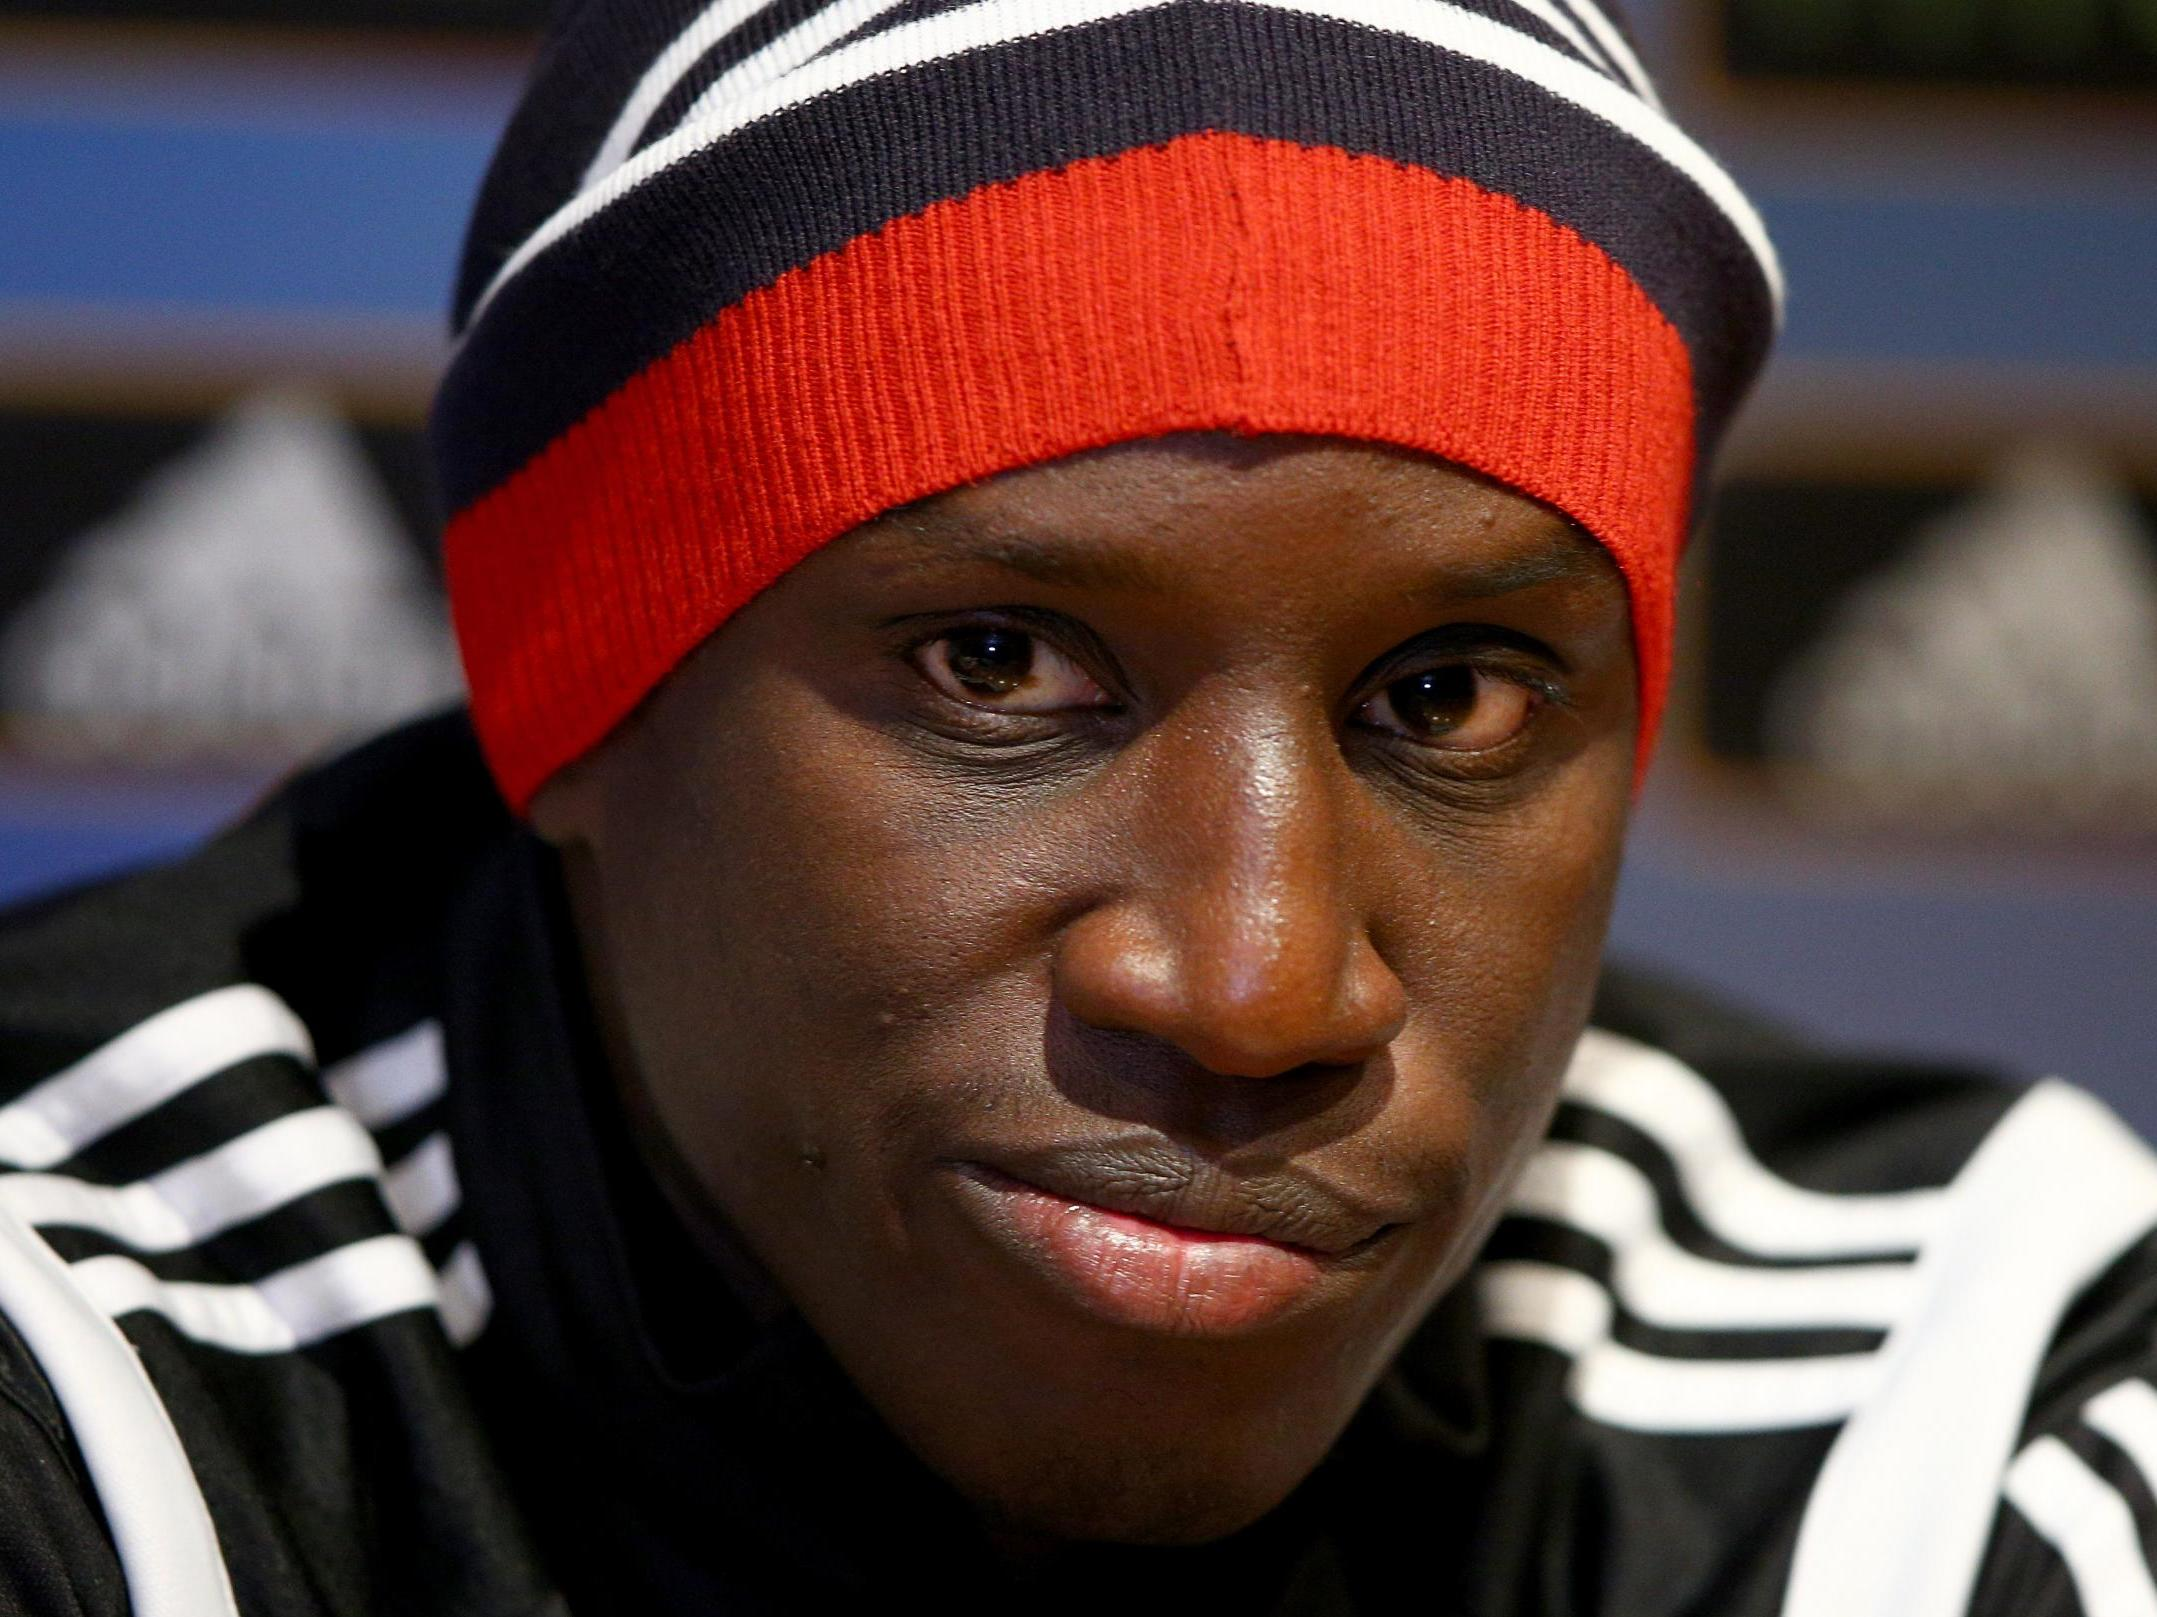 Demba Ba on Chelsea under Frank Lampard, African footballers not getting respect they deserve and racism's return